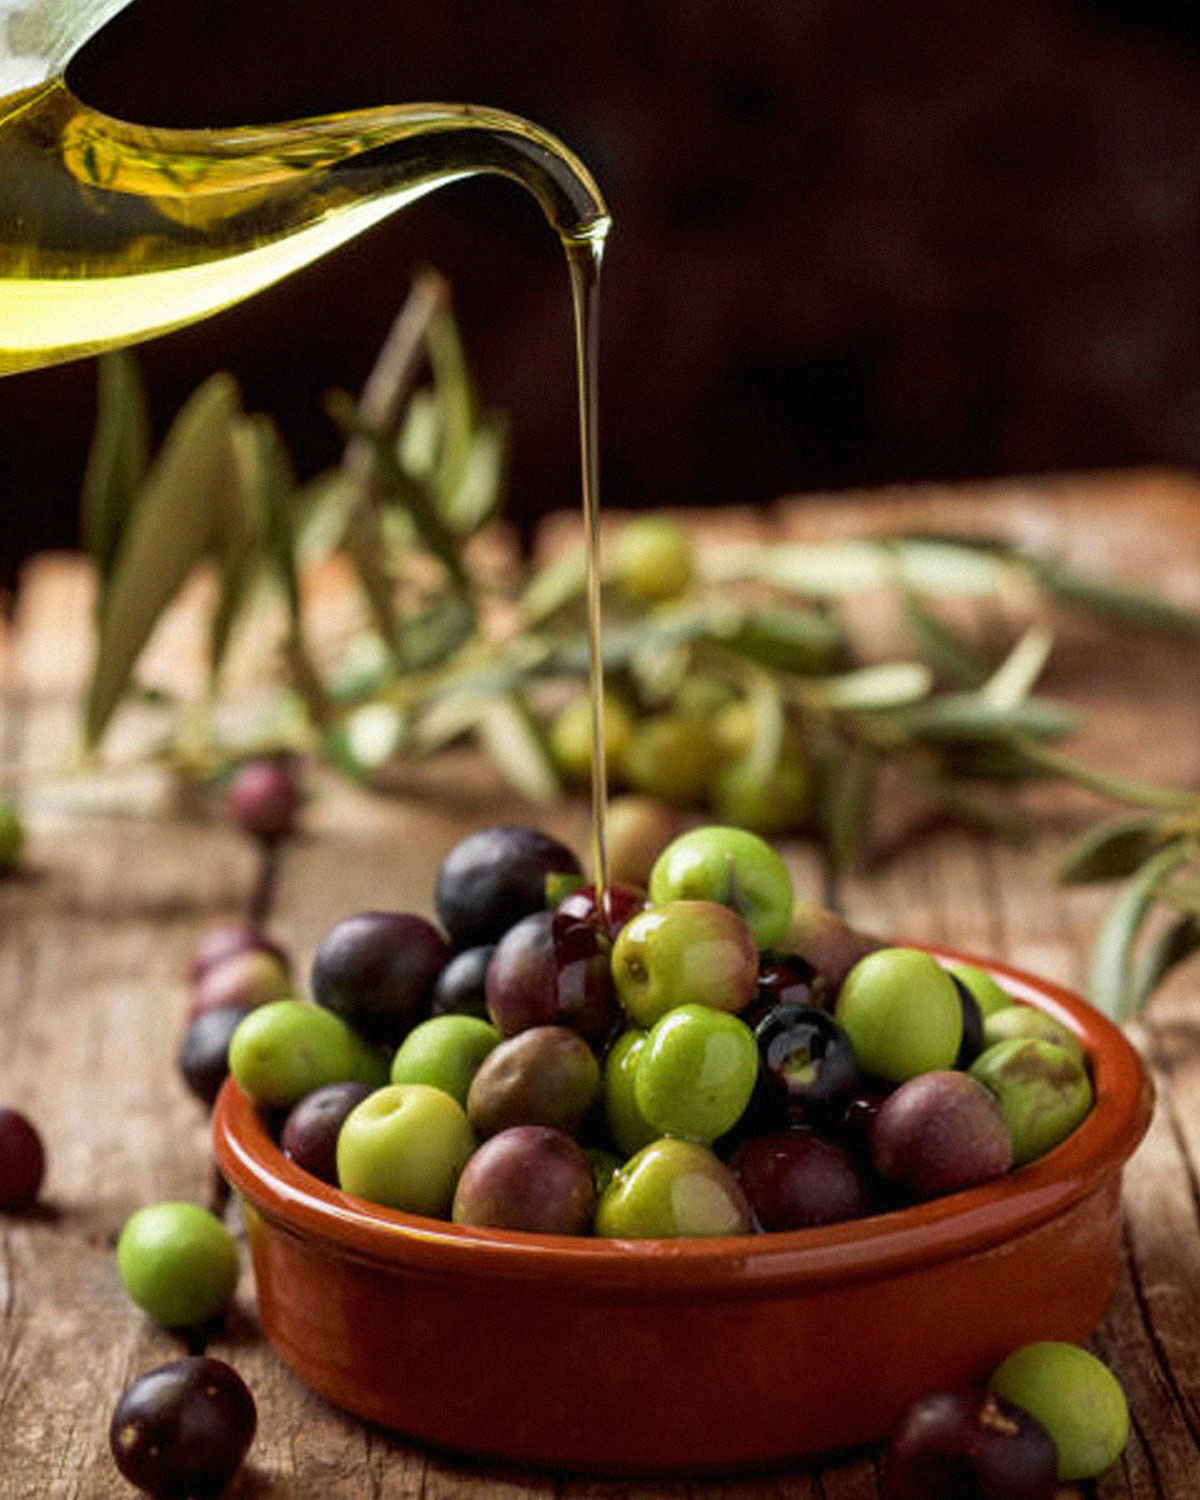 pouring olive oil on top of olives in a small bowl